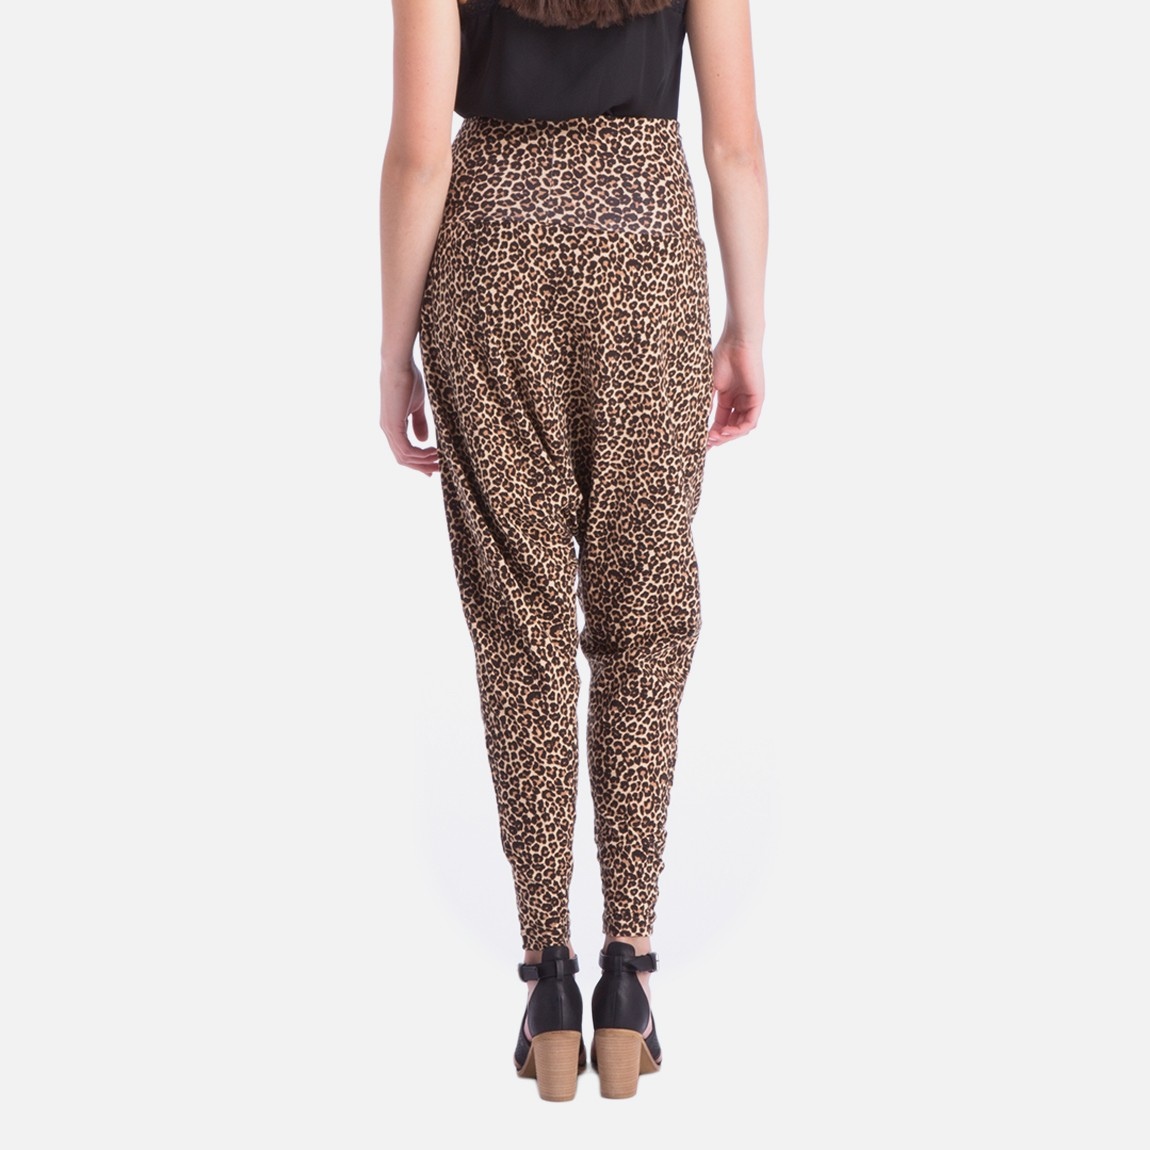 FREE Standard Delivery on orders £50 or over; FREE Next Day Click & Collect on orders £30 or over; International Delivery find out more; Home Women Trousers & leggings Black printed harem pants Save. Was £ Now £ Roman Originals Black floral print harem trousers Save. £ Sort by. Subscribe to our newsletter.